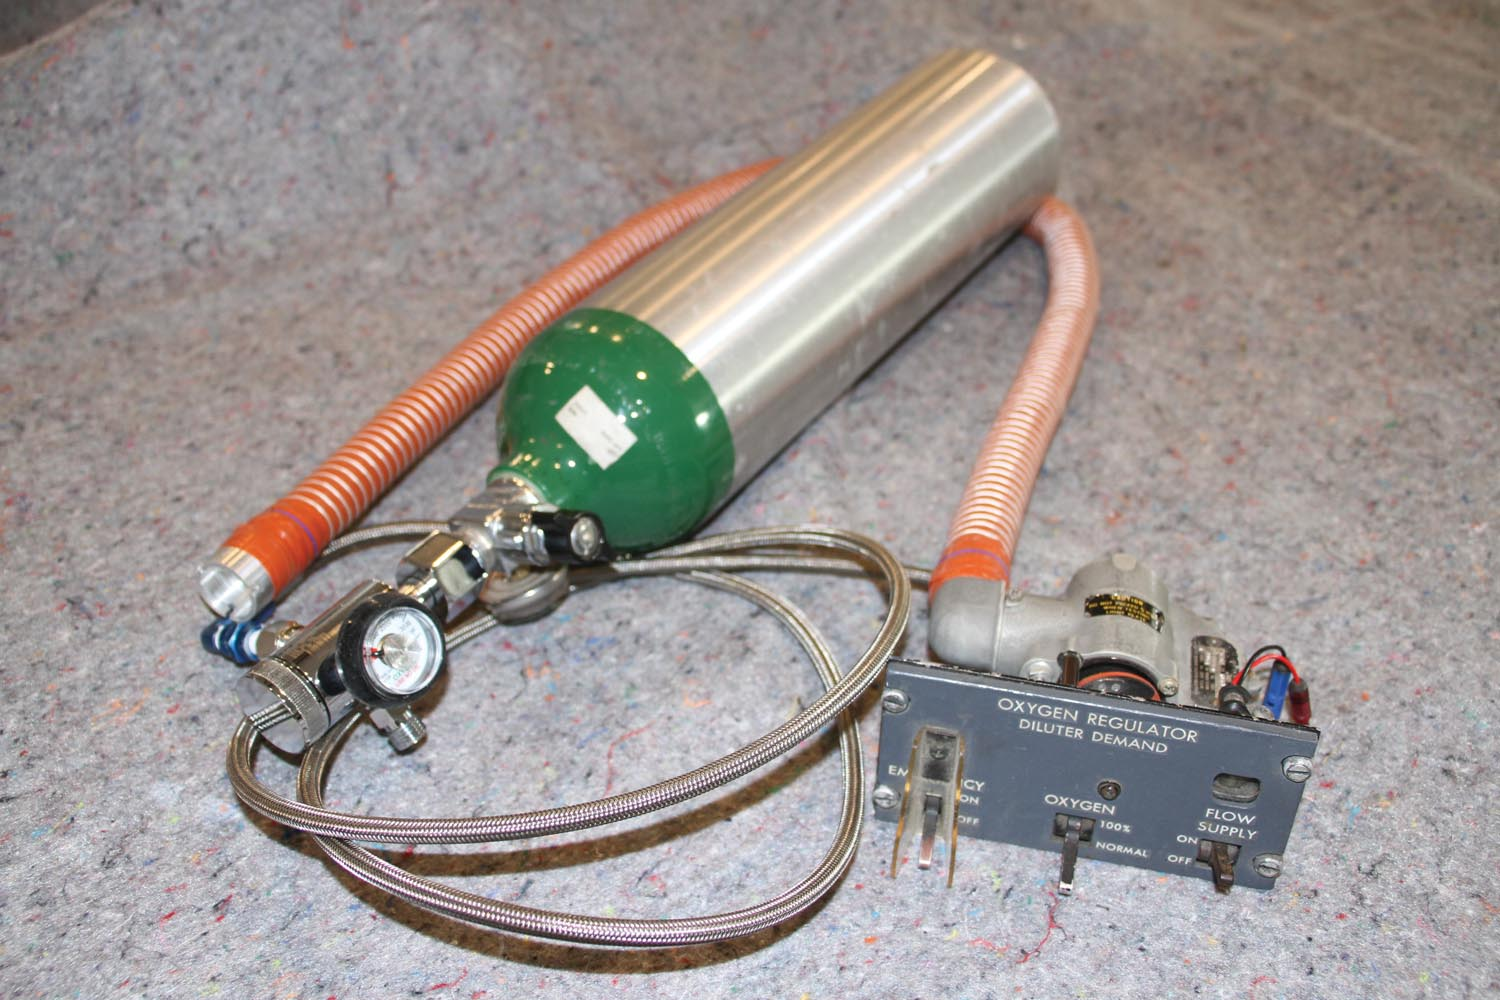 Here's an entire functional system with bottle, first stage, hoses, and the panel-mount regulator.